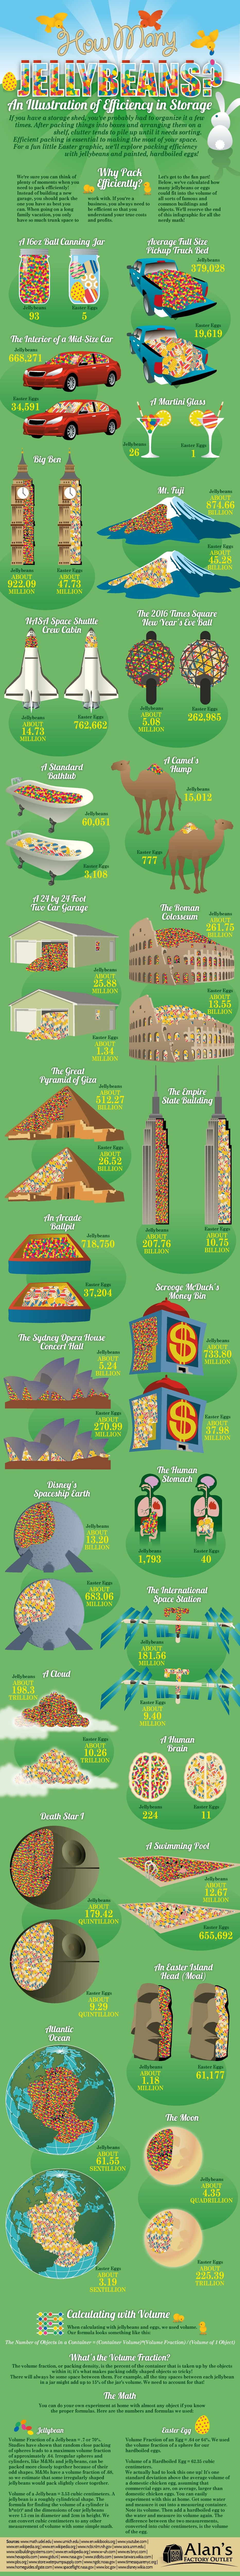 How Many Jellybeans? #Infographic